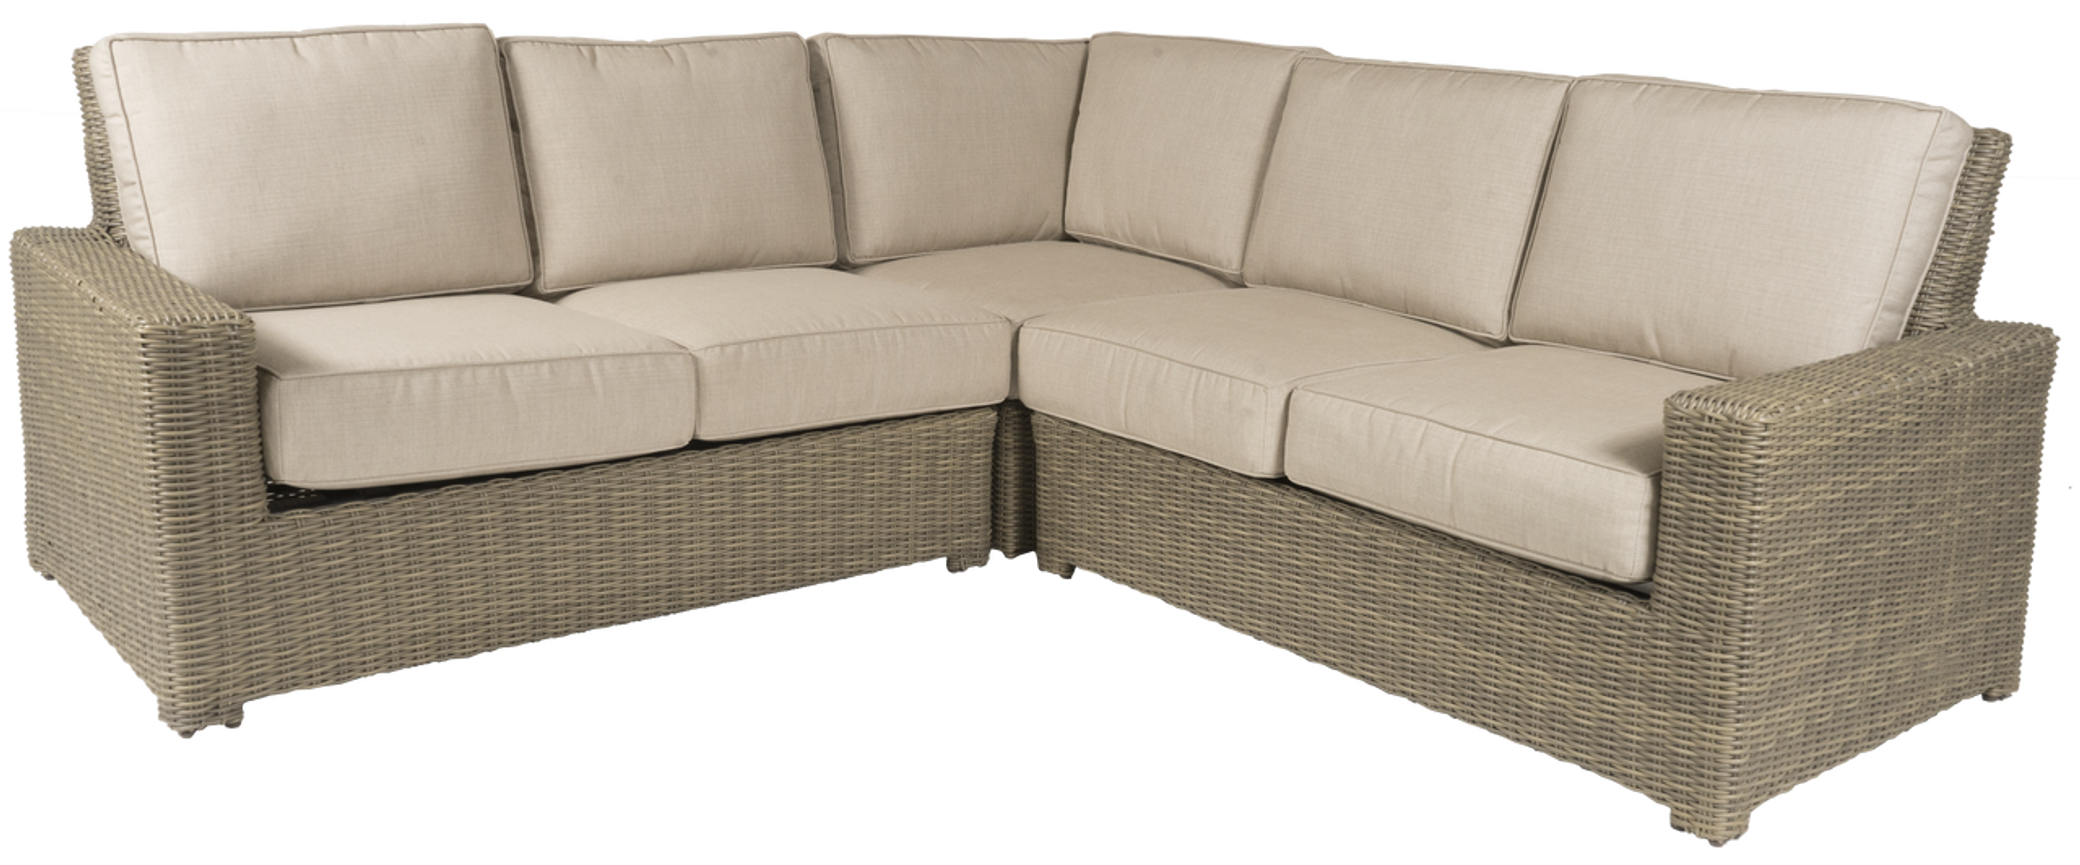 Erwin Napa Outdoor Sectional Sofa W Cushions